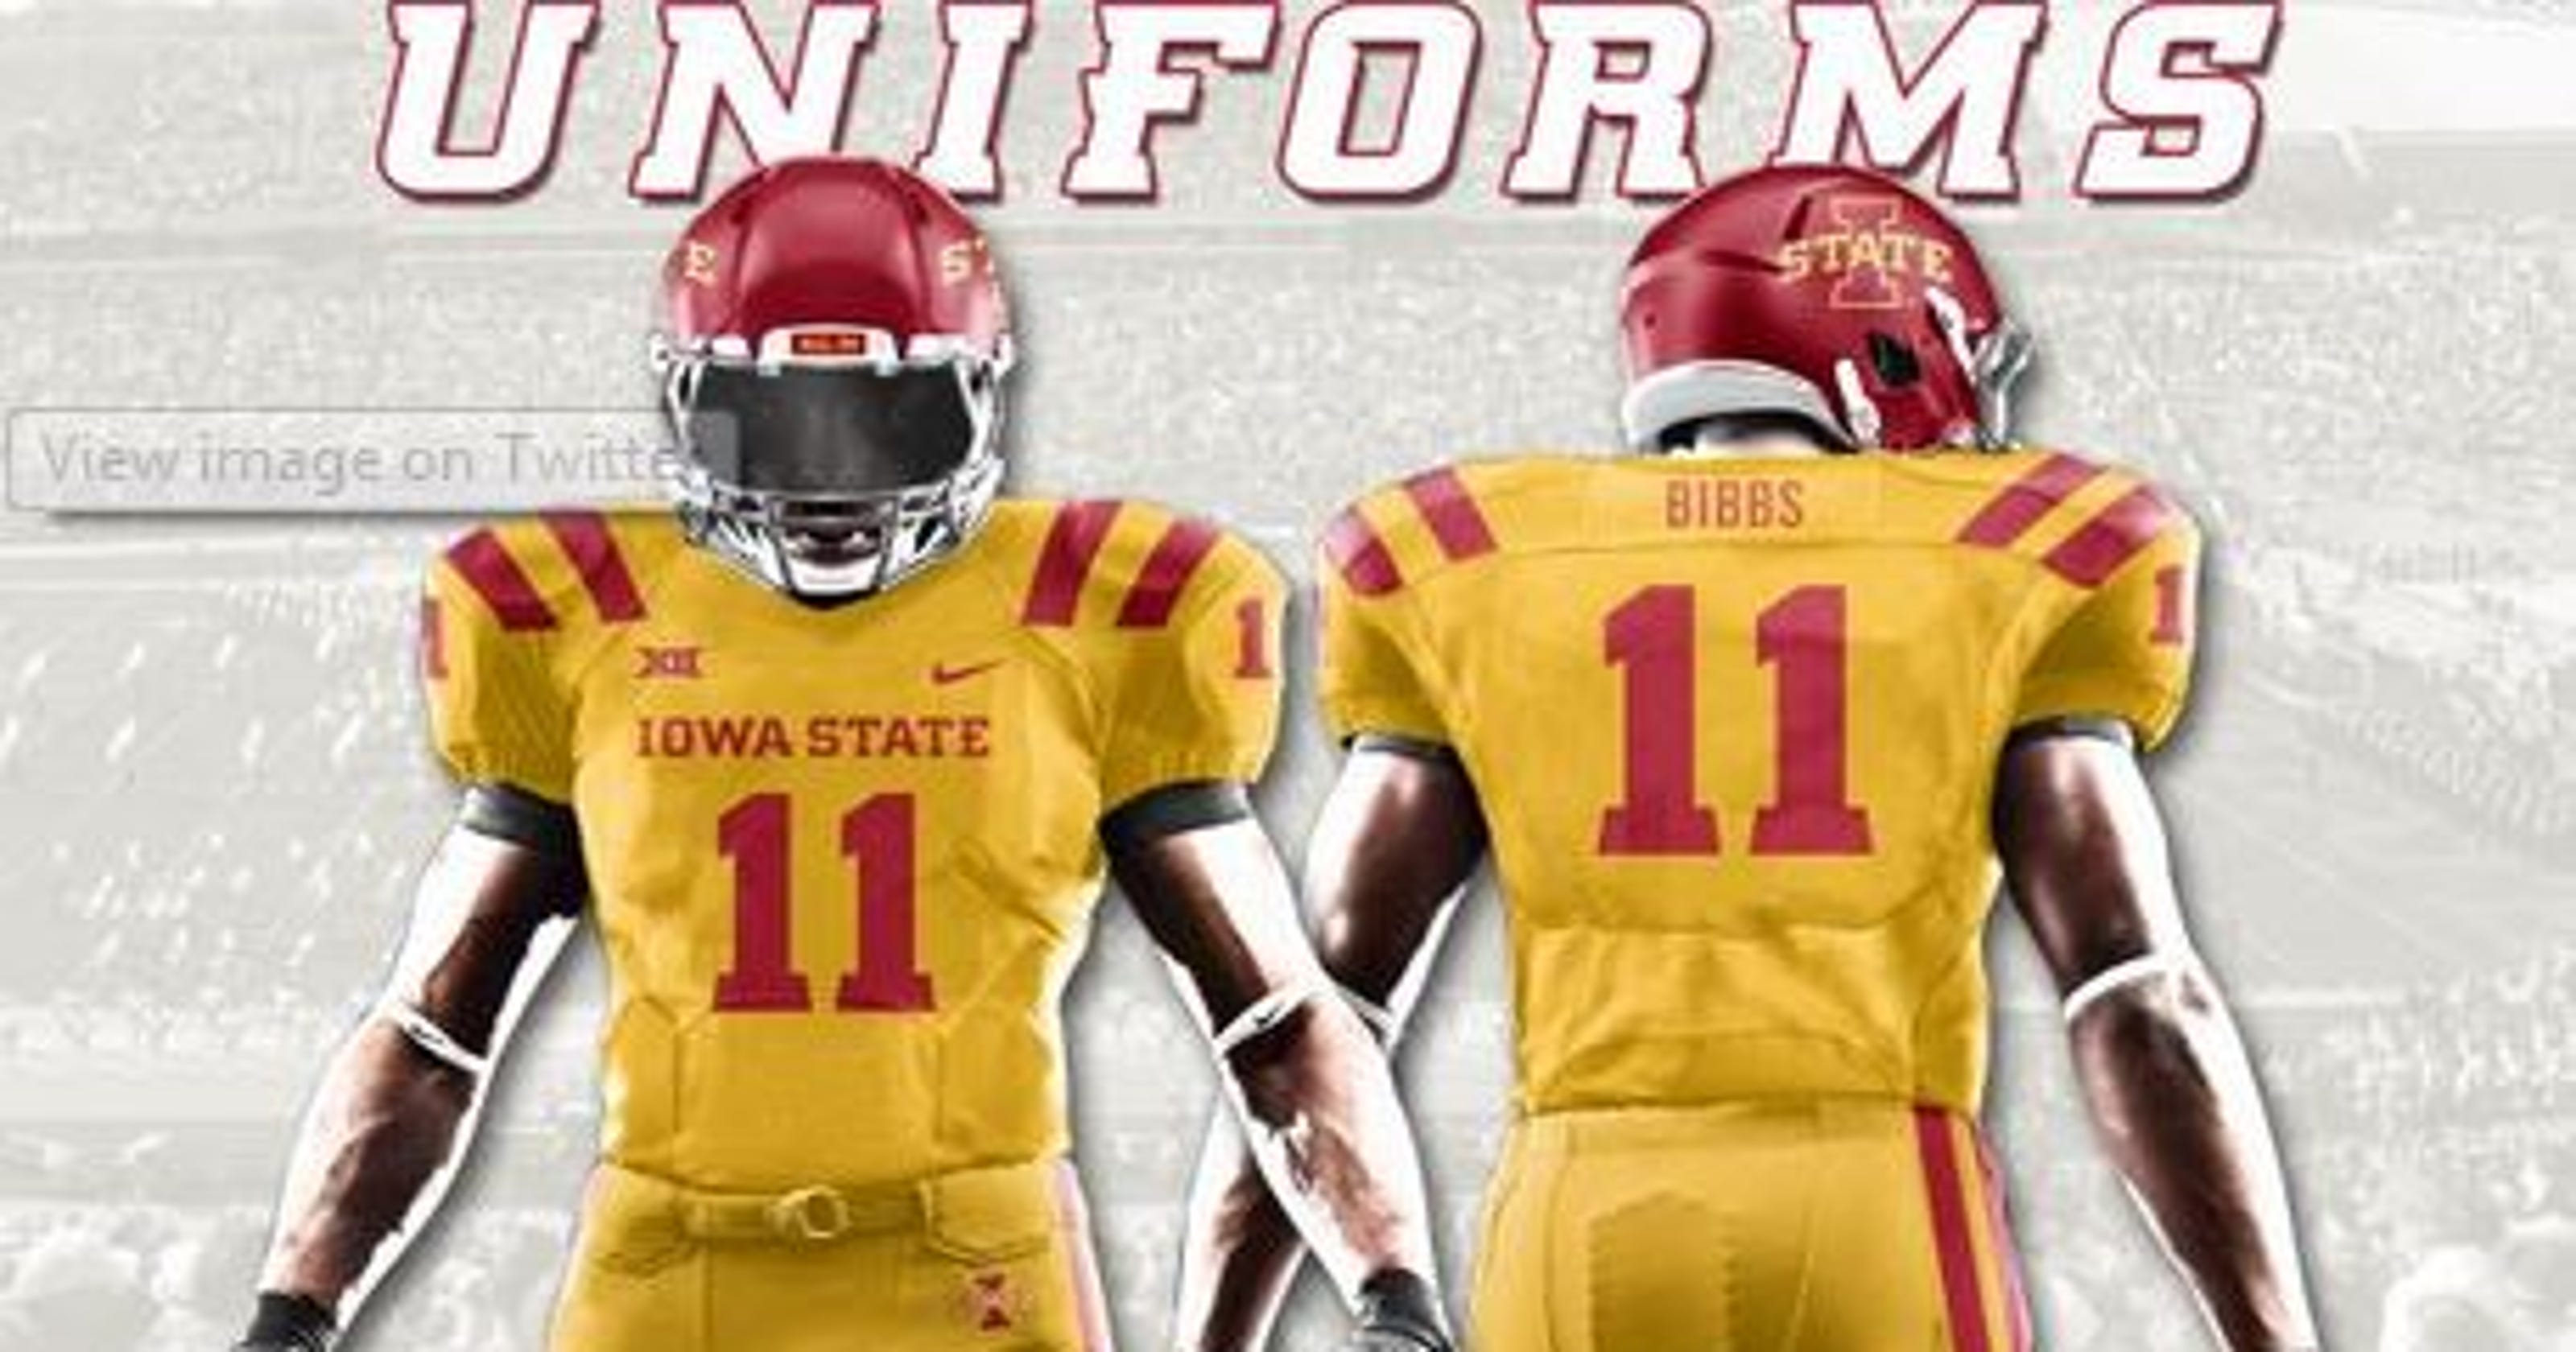 half off 4e428 aa6d9 Iowa State announces bold uniform choice for Toledo game